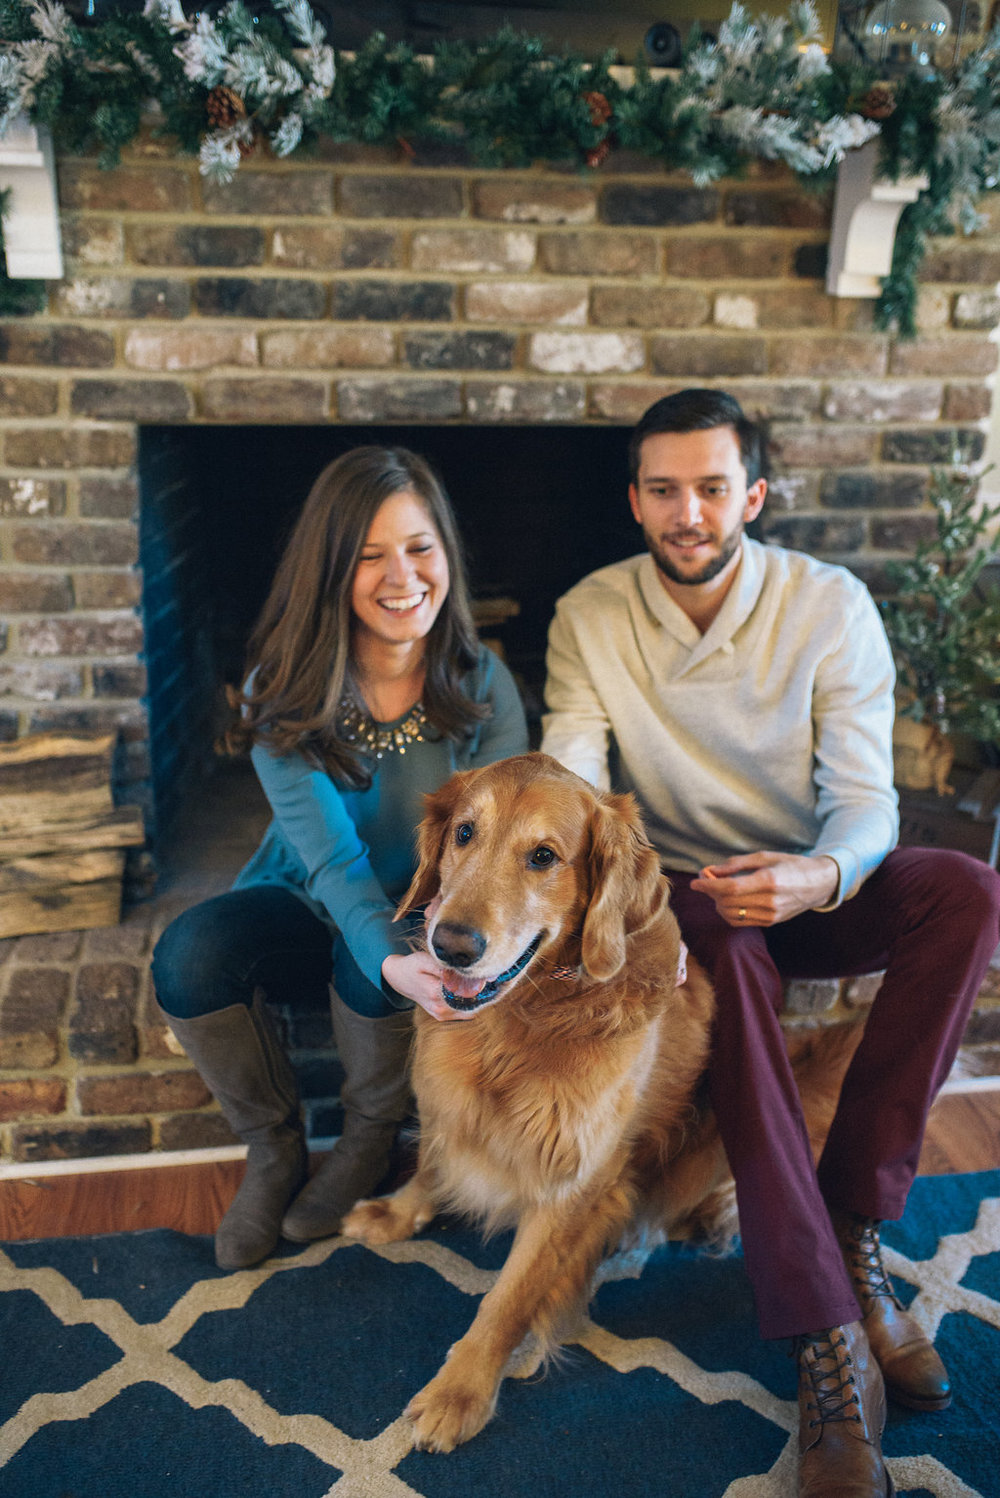 raleigh family photographer - holiday mini sessions